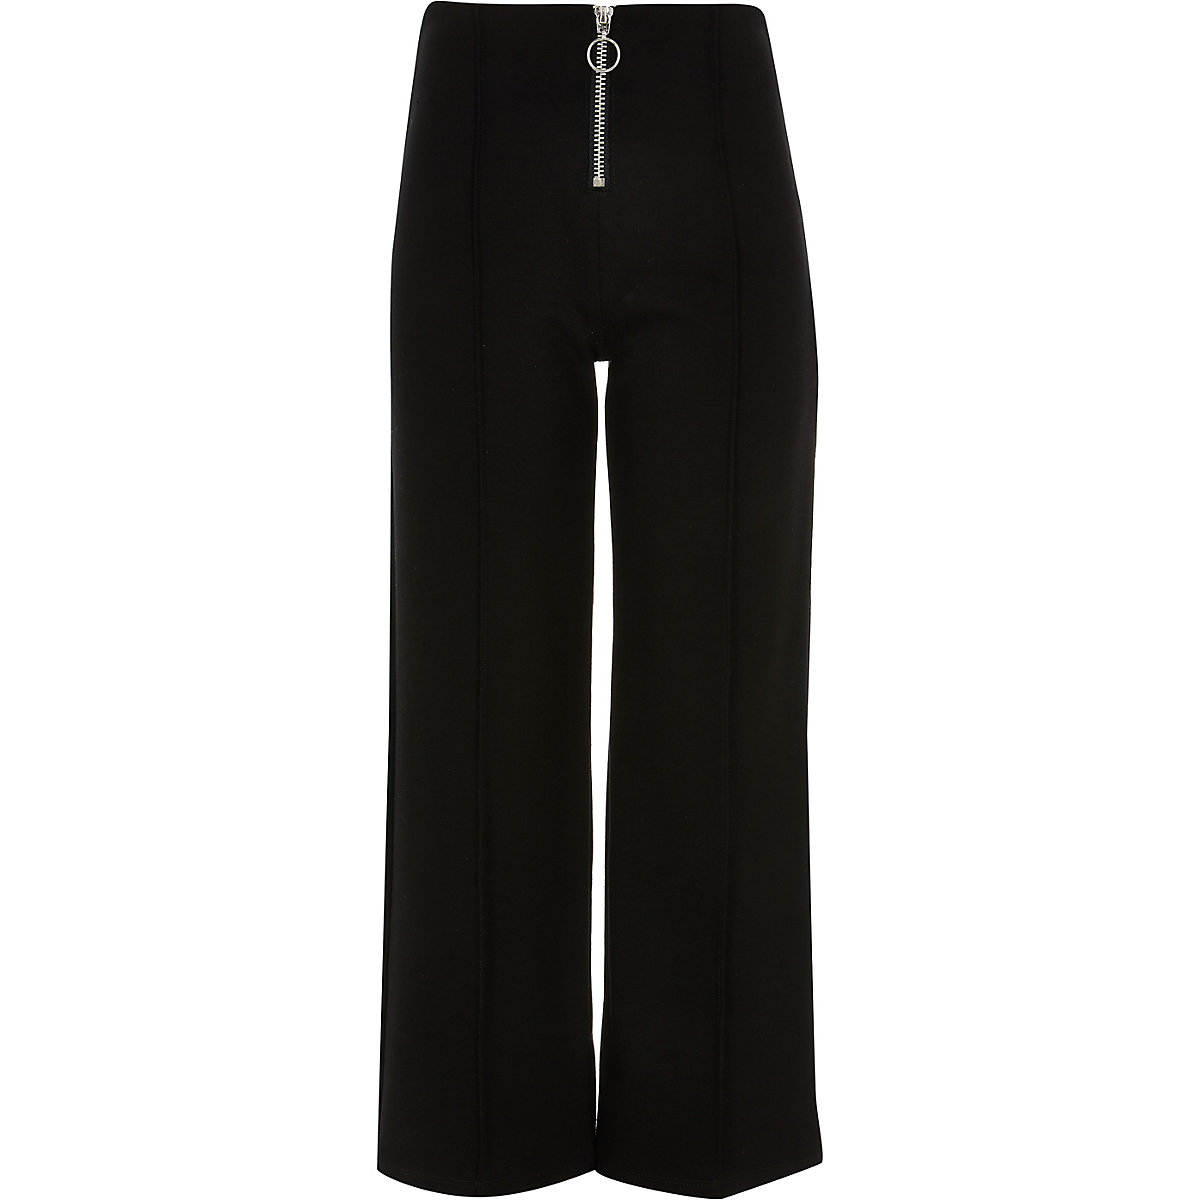 Girls black zip front culotte pants